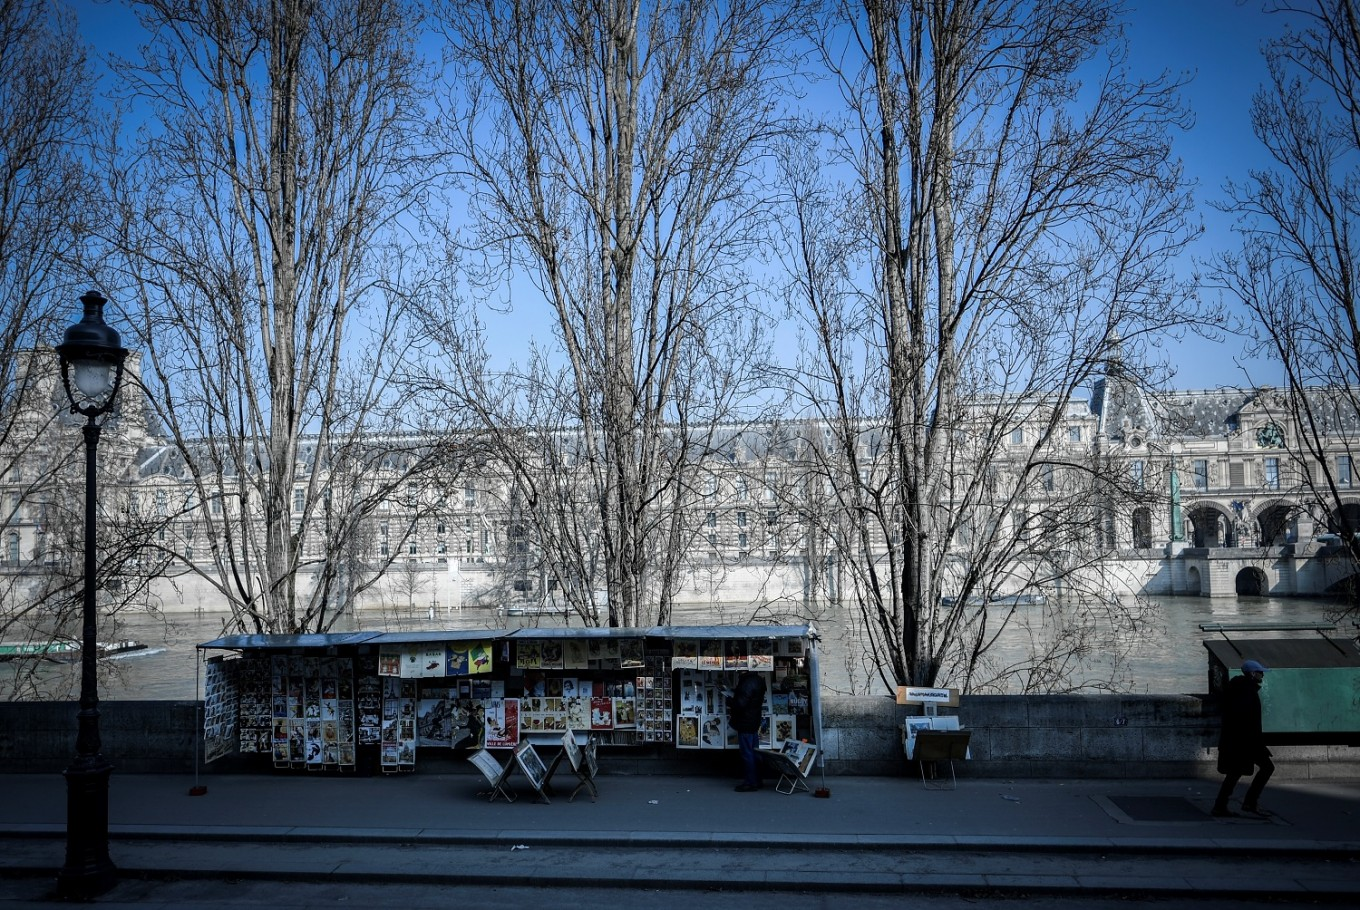 Paris open-air booksellers seek UNESCO status